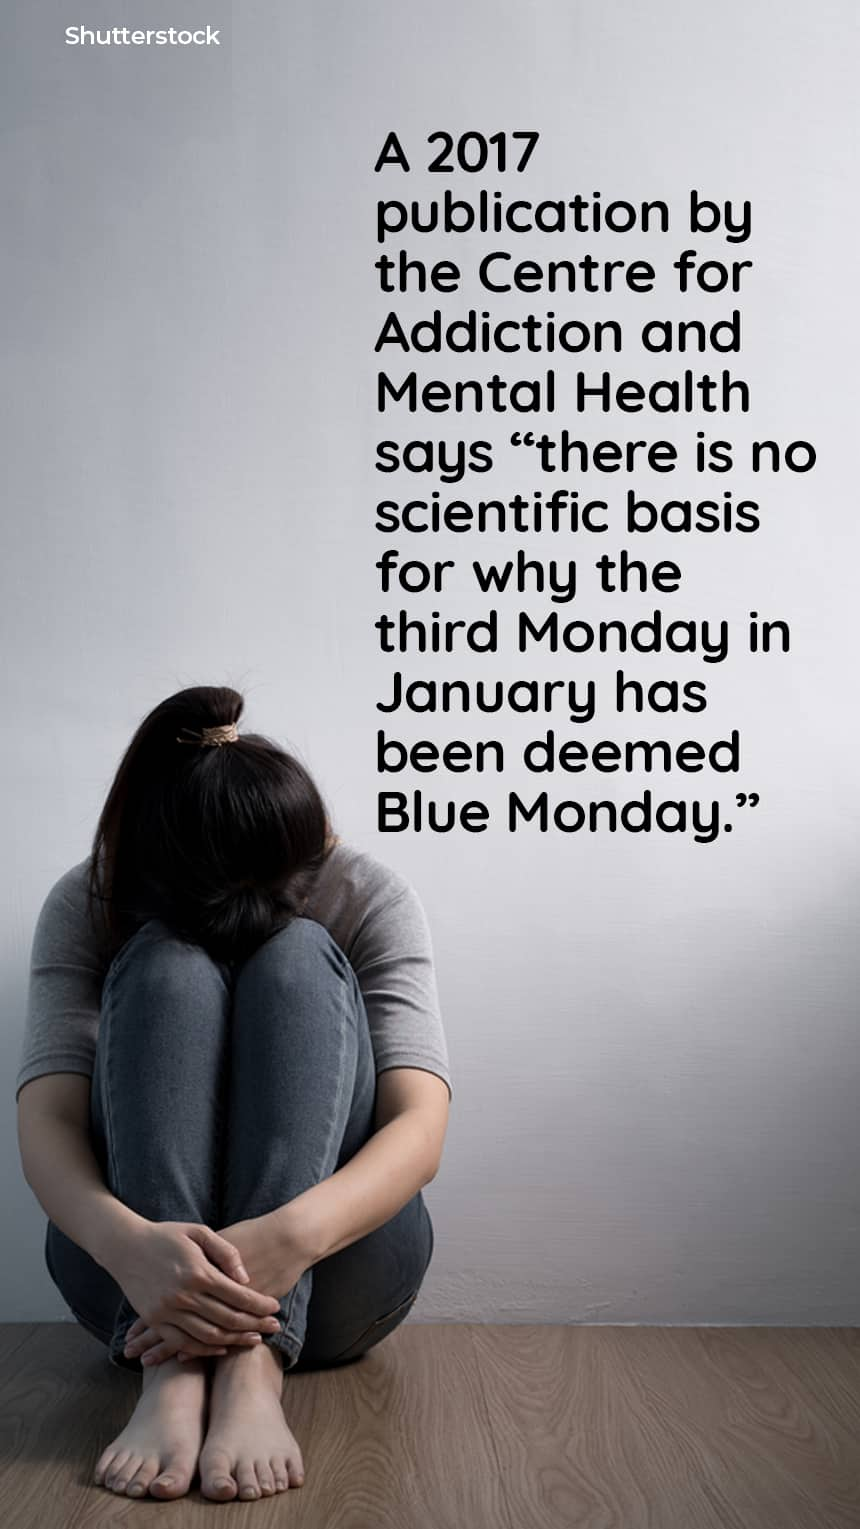 """A 2017 publication by the Centre for Addiction and Mental Health says """"there is no scientific basis for why the third Monday in January has been deemed Blue Monday."""